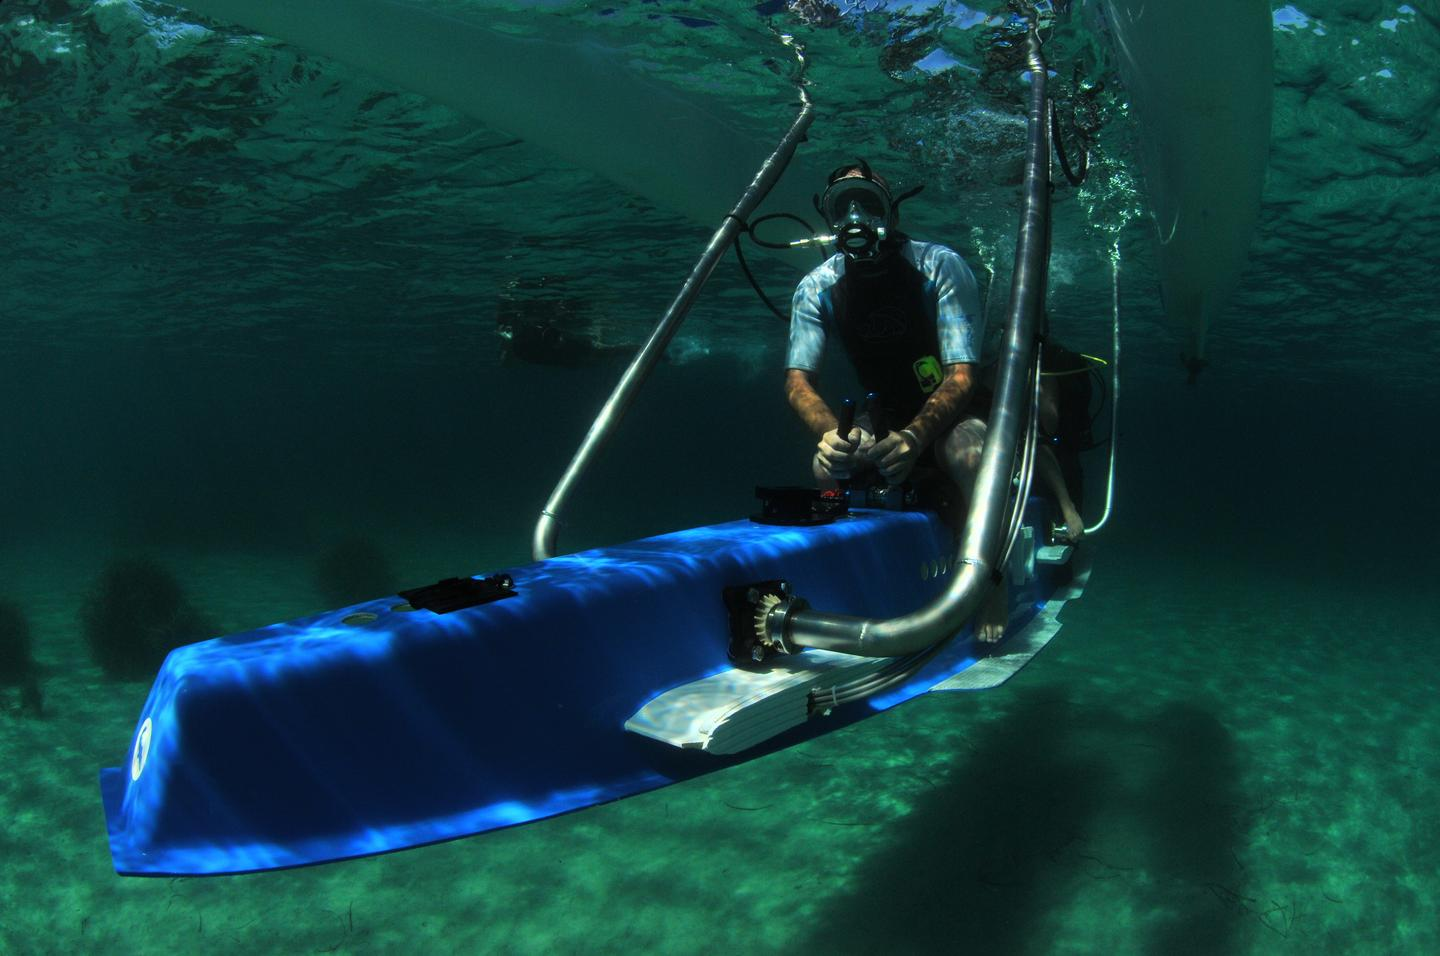 In dive mode, the passengers are about 2 m (6.5 ft) below the surface